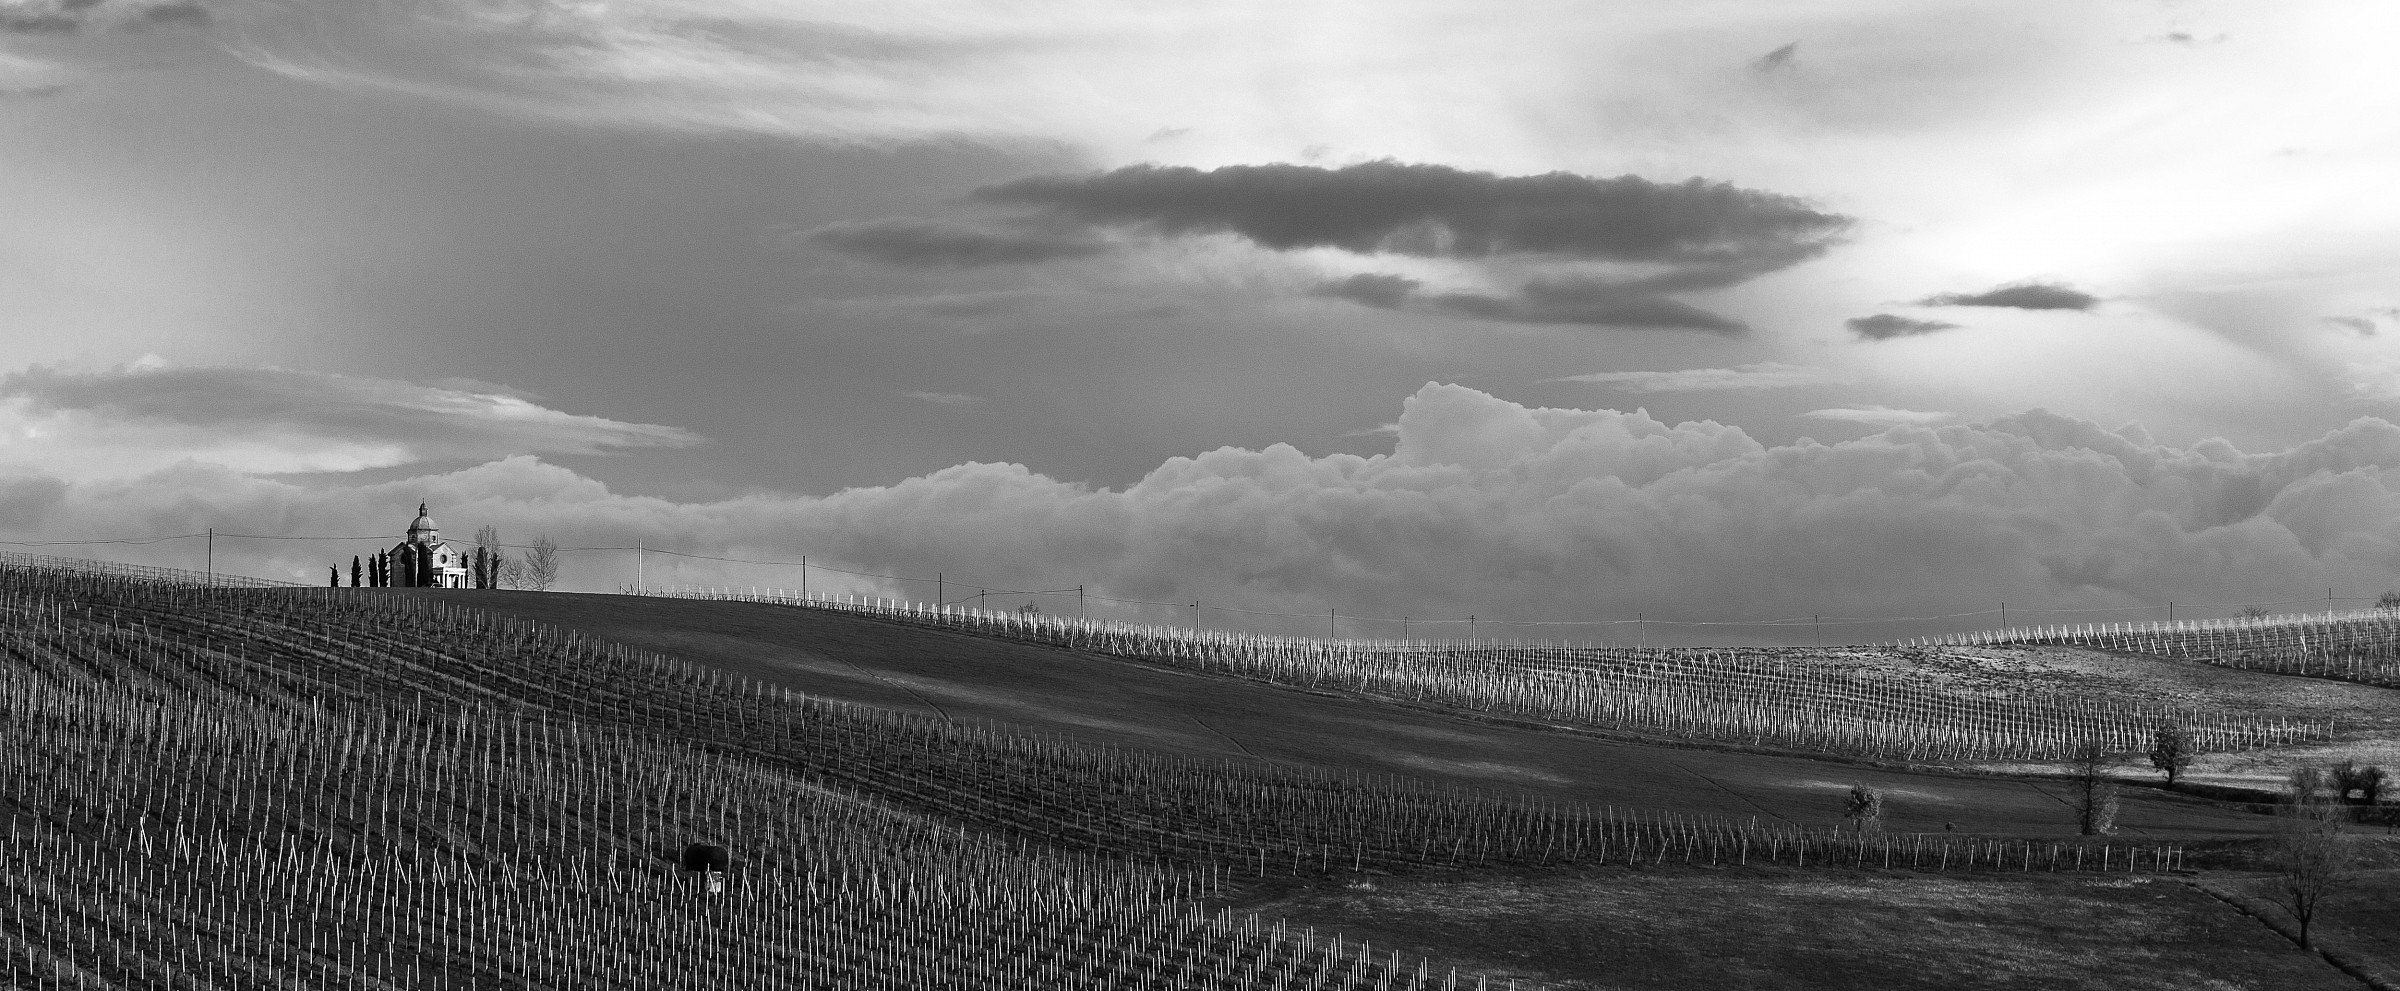 Vineyards of Piacenza after the rain - Overview...